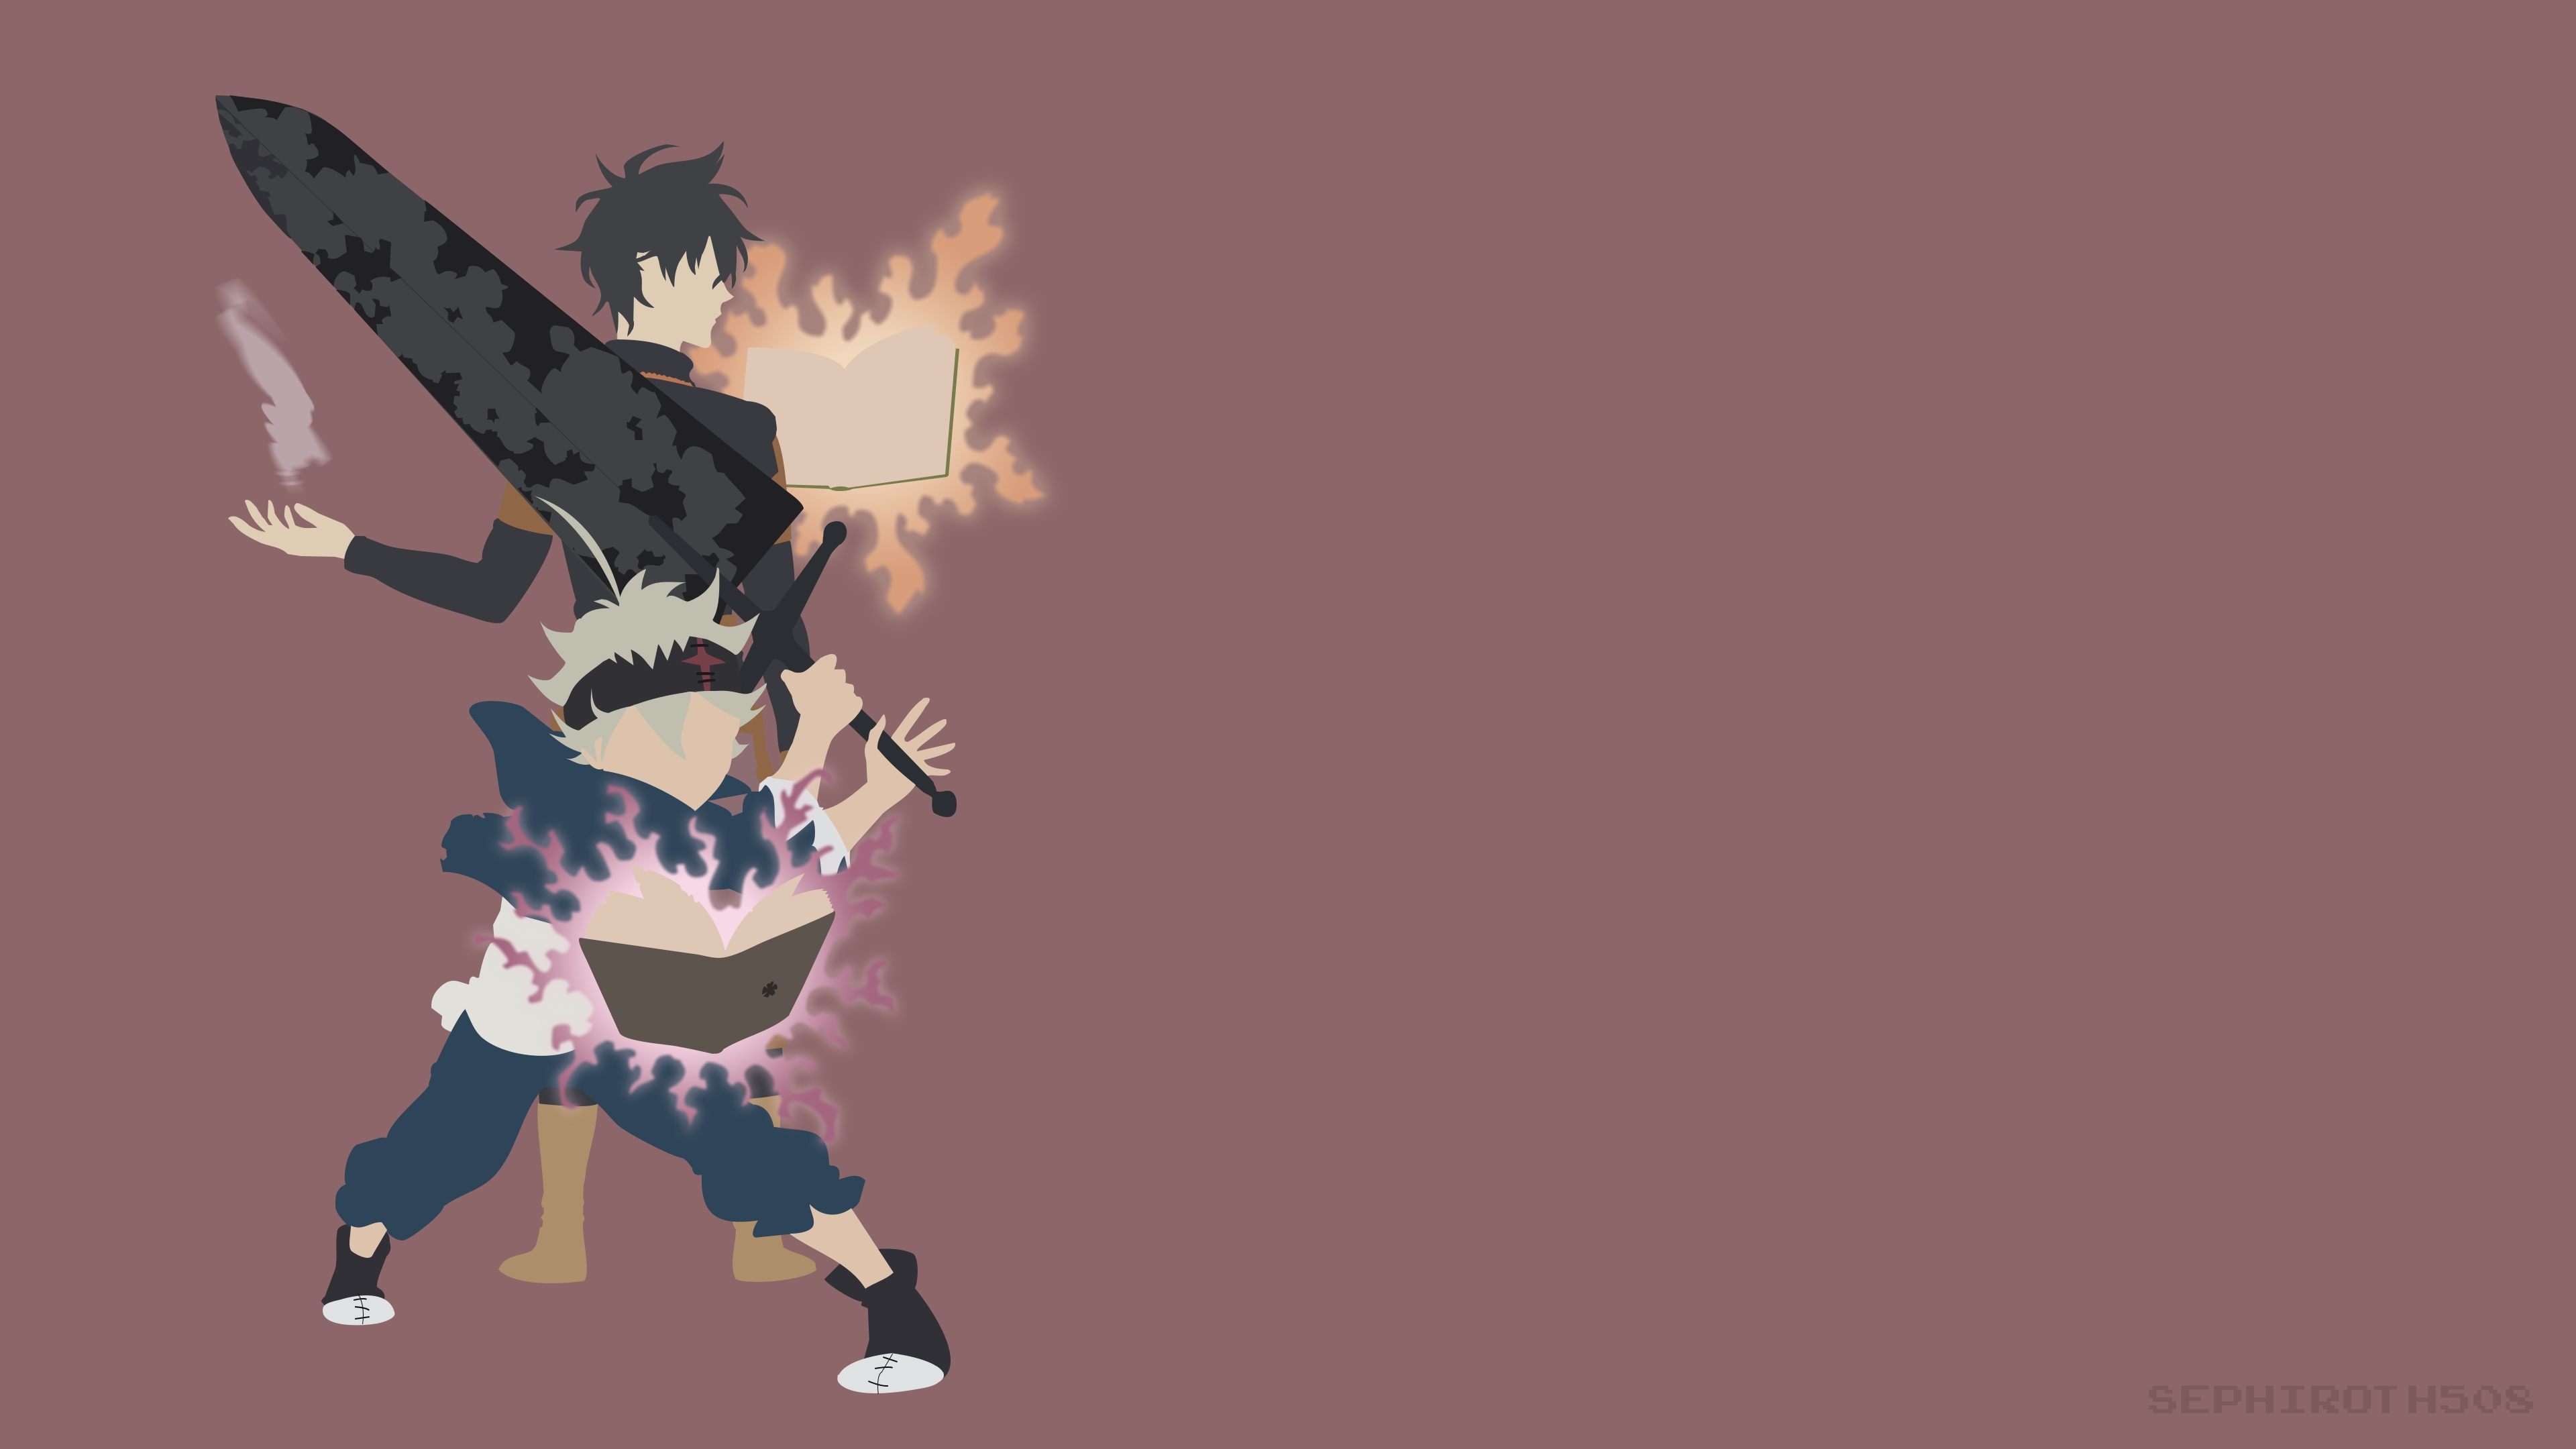 Minimalist Black Clover Wallpapers Top Free Minimalist Black Clover Backgrounds Wallpaperaccess